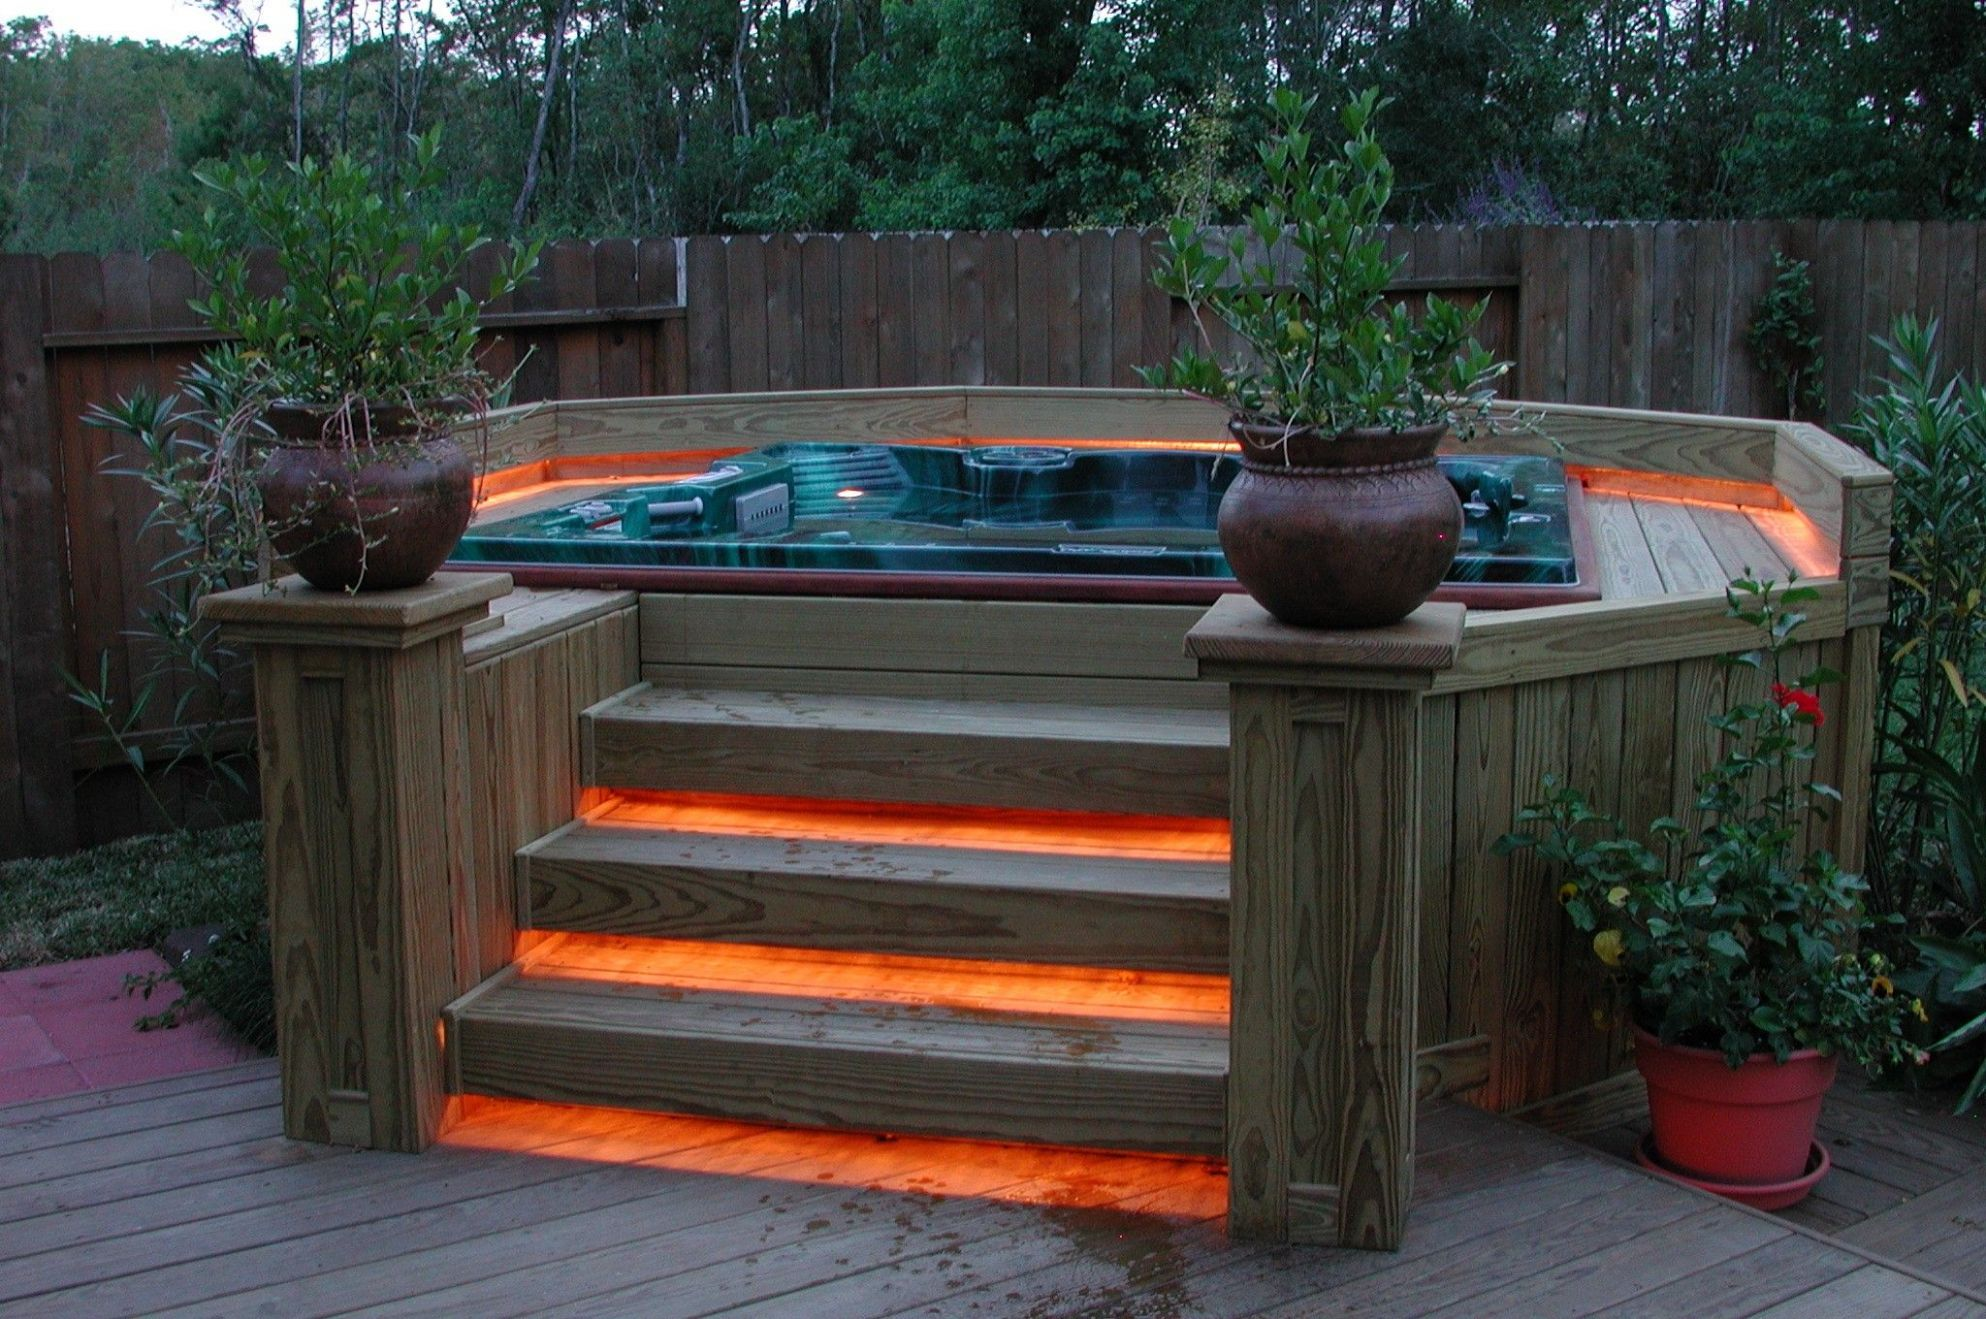 11 Irresistible hot tub spa designs for your backyard | Hot tub ...